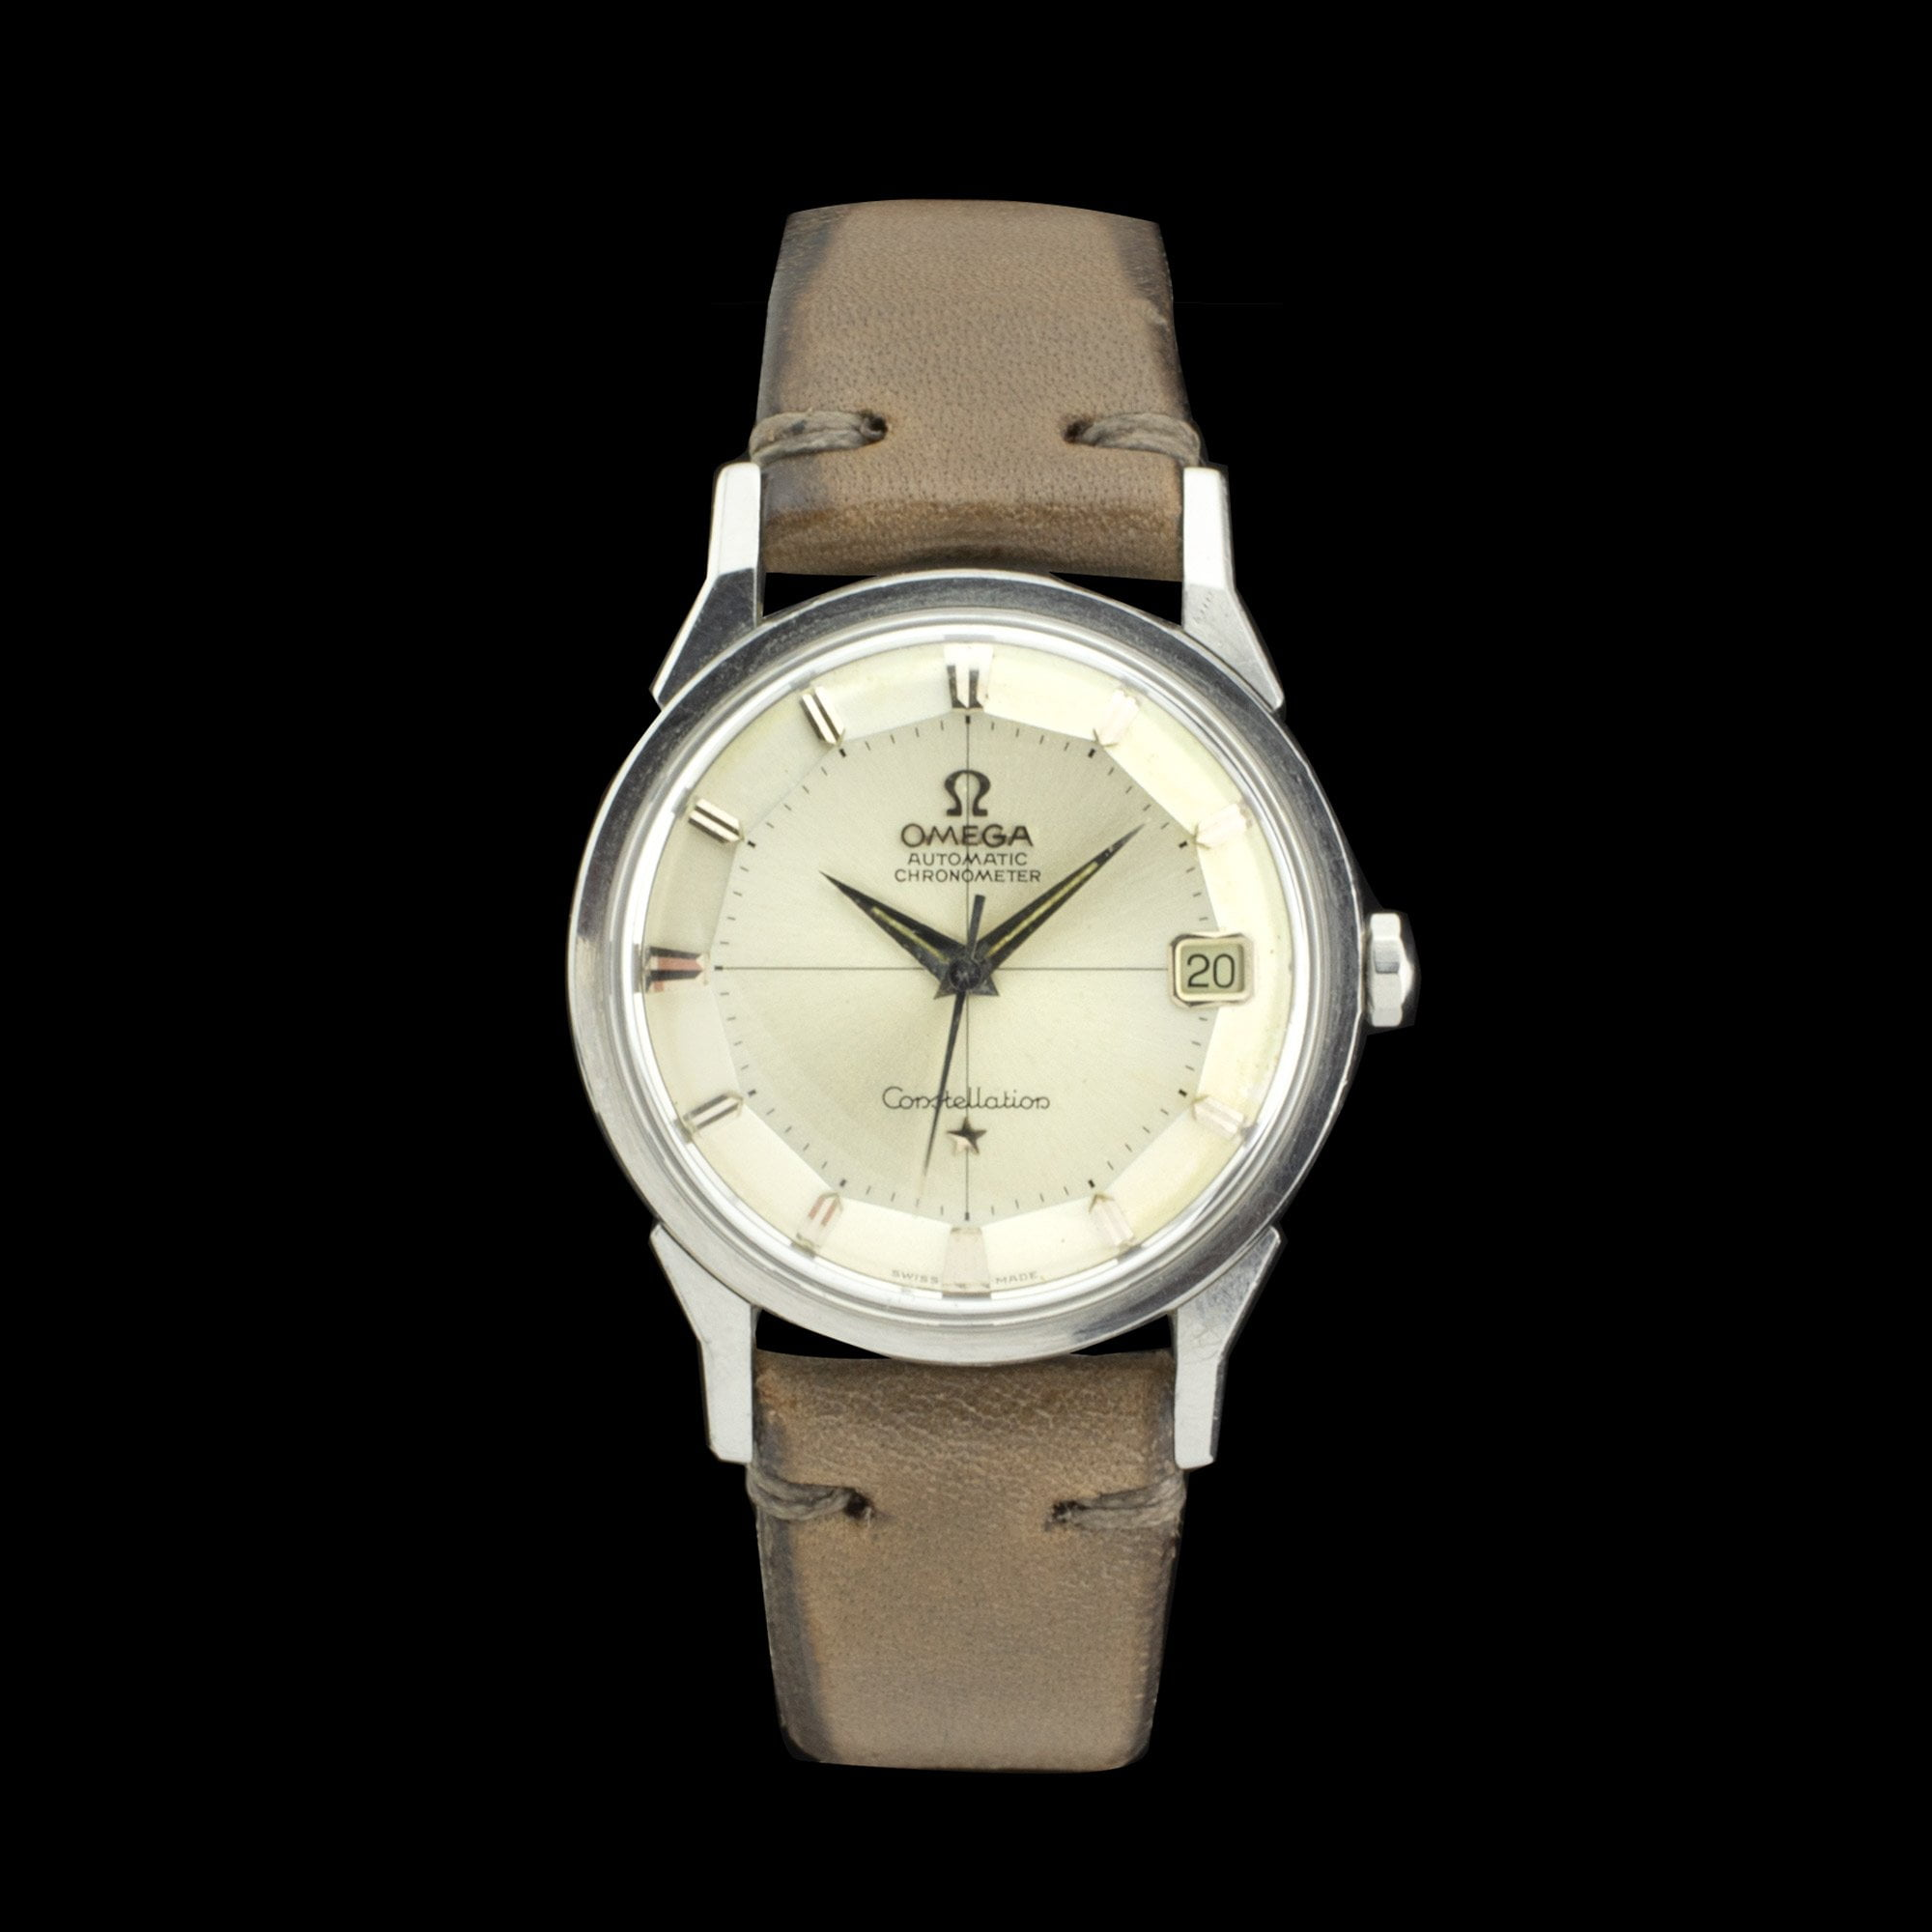 Omega constellation pie pan amsterdam vintage watches for Omega watch constellation